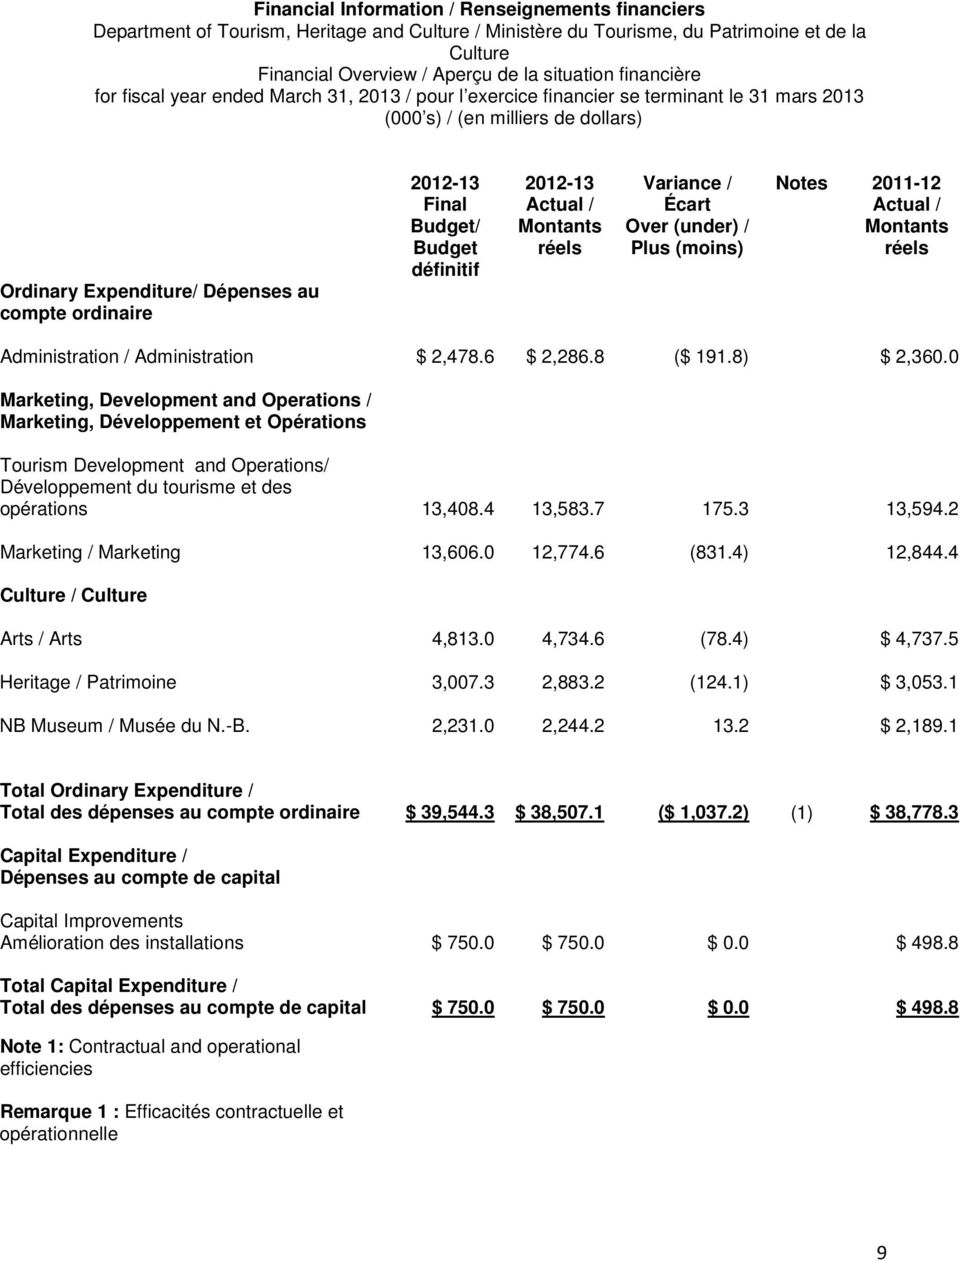 Final Budget/ Budget définitif 2012-13 Actual / Montants réels Variance / Écart Over (under) / Plus (moins) Notes 2011-12 Actual / Montants réels Administration / Administration $ 2,478.6 $ 2,286.